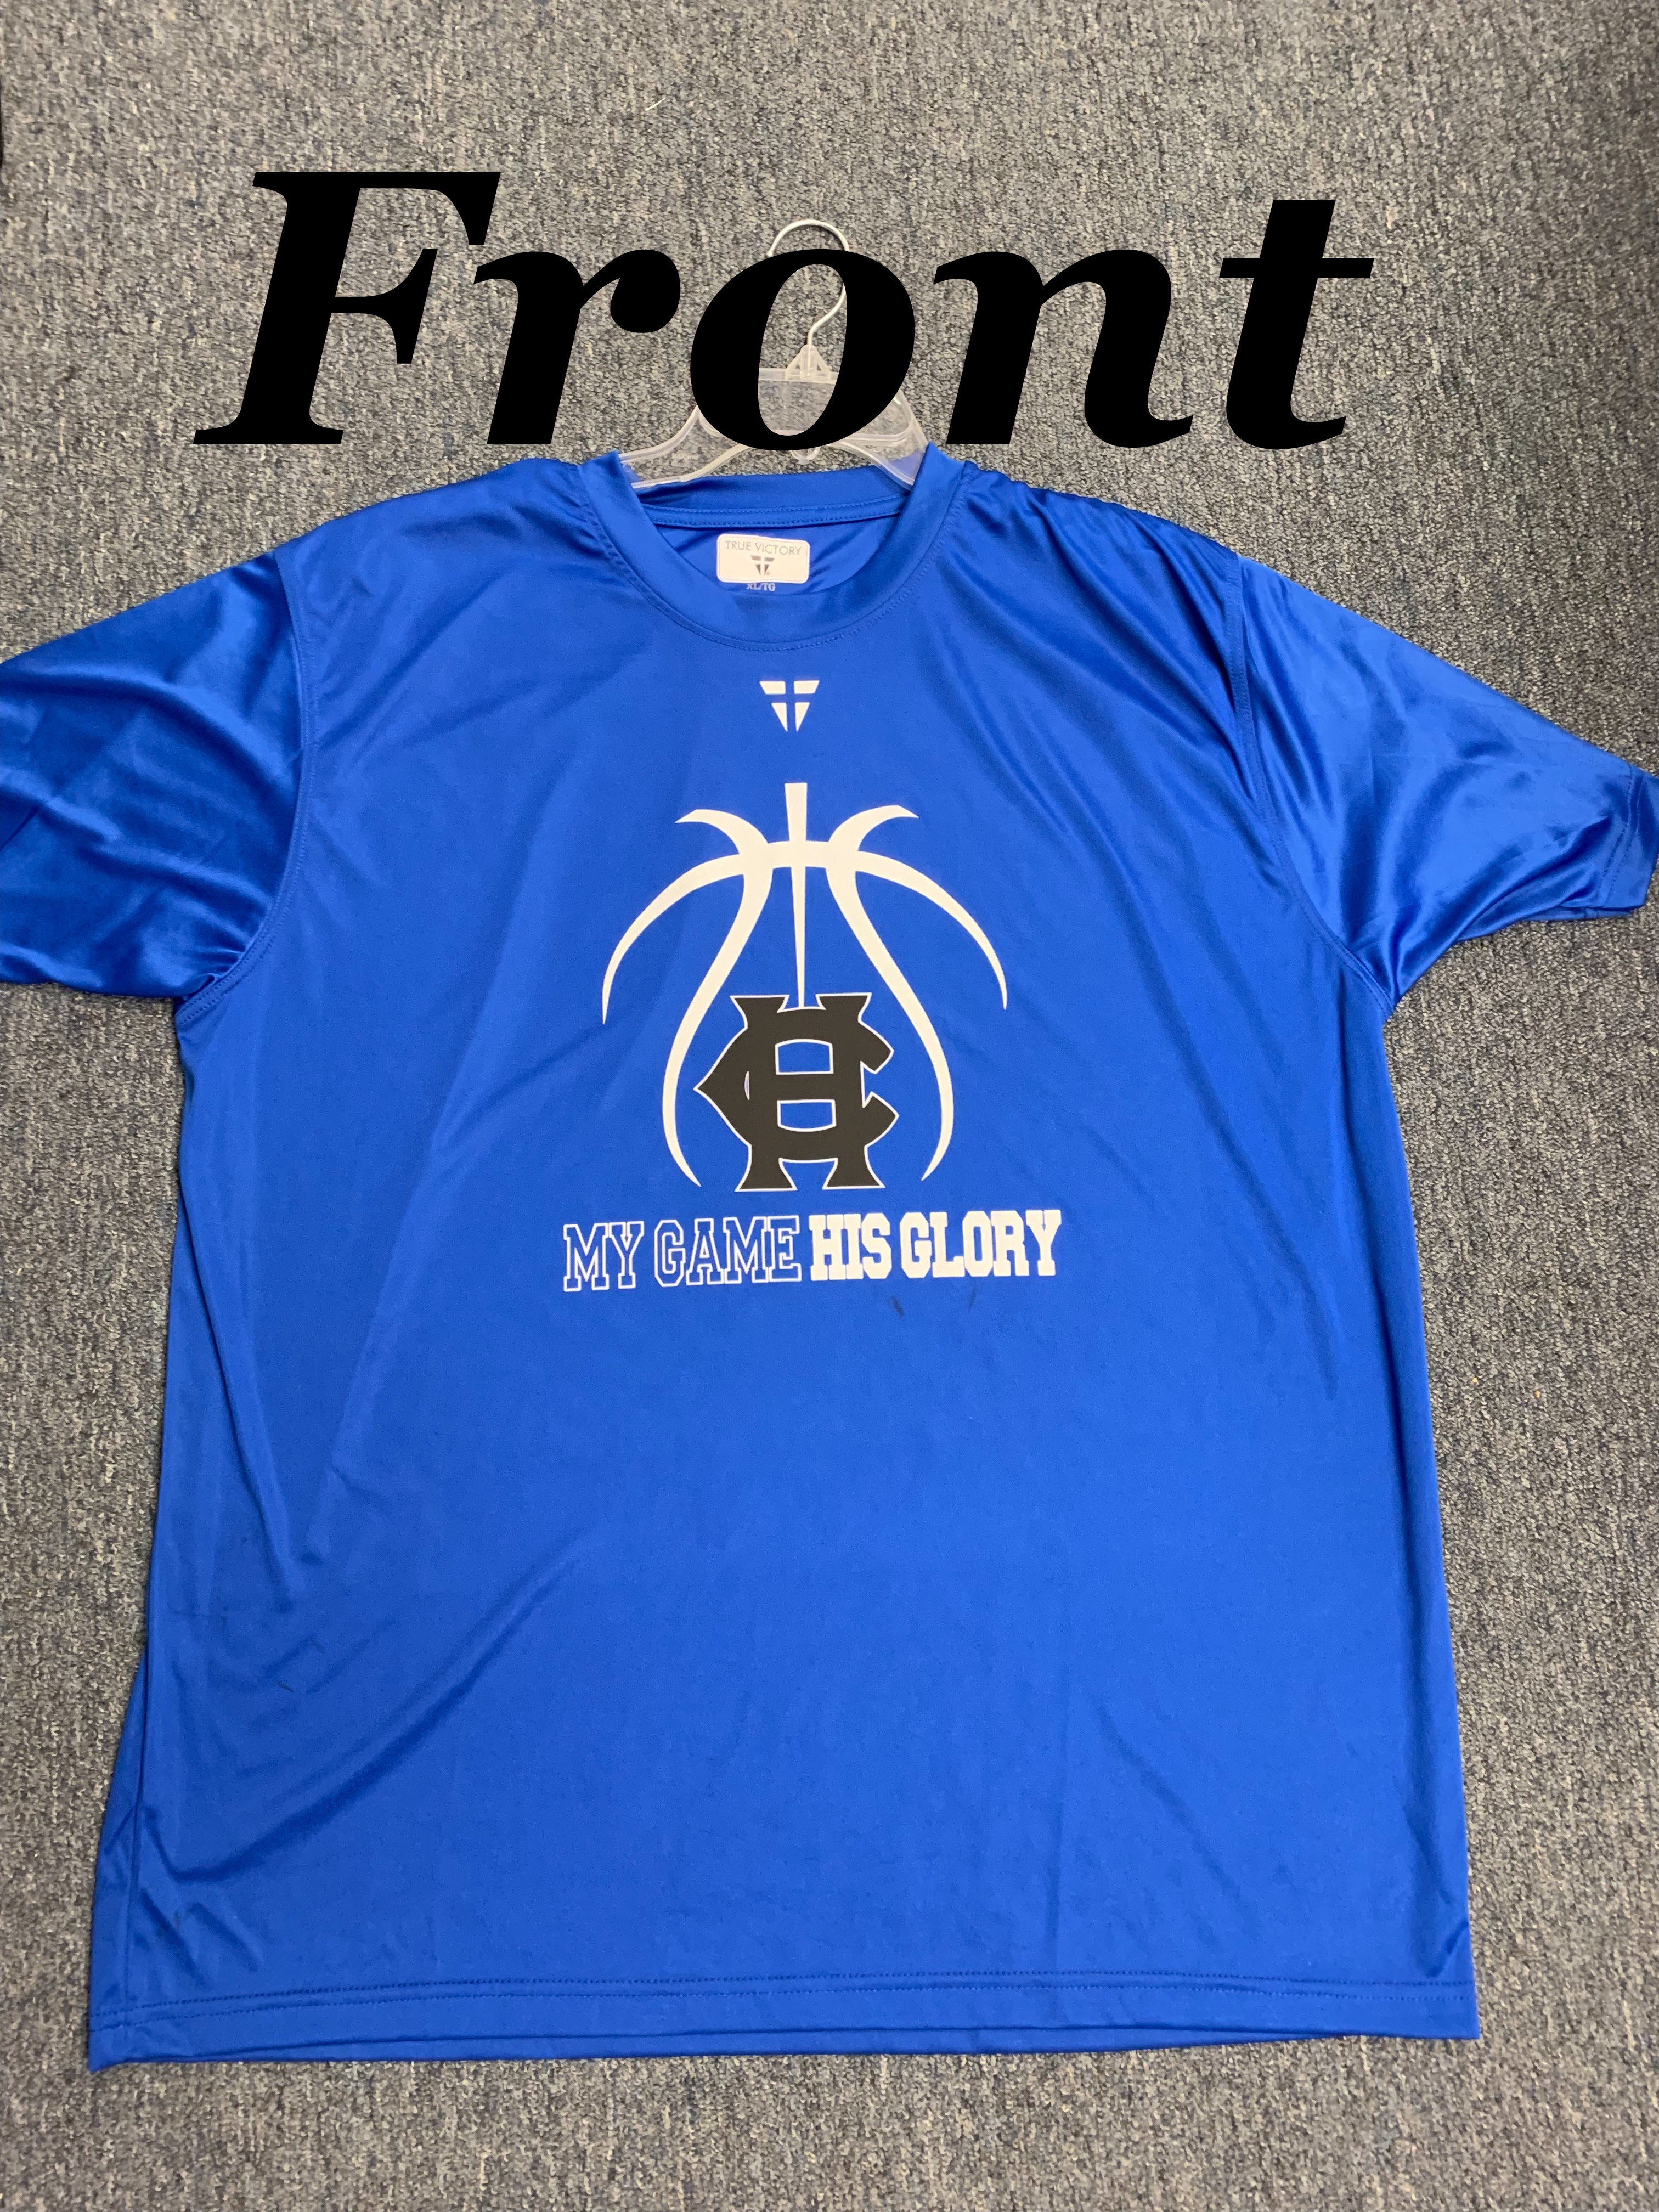 Basketball Shirts On Sale